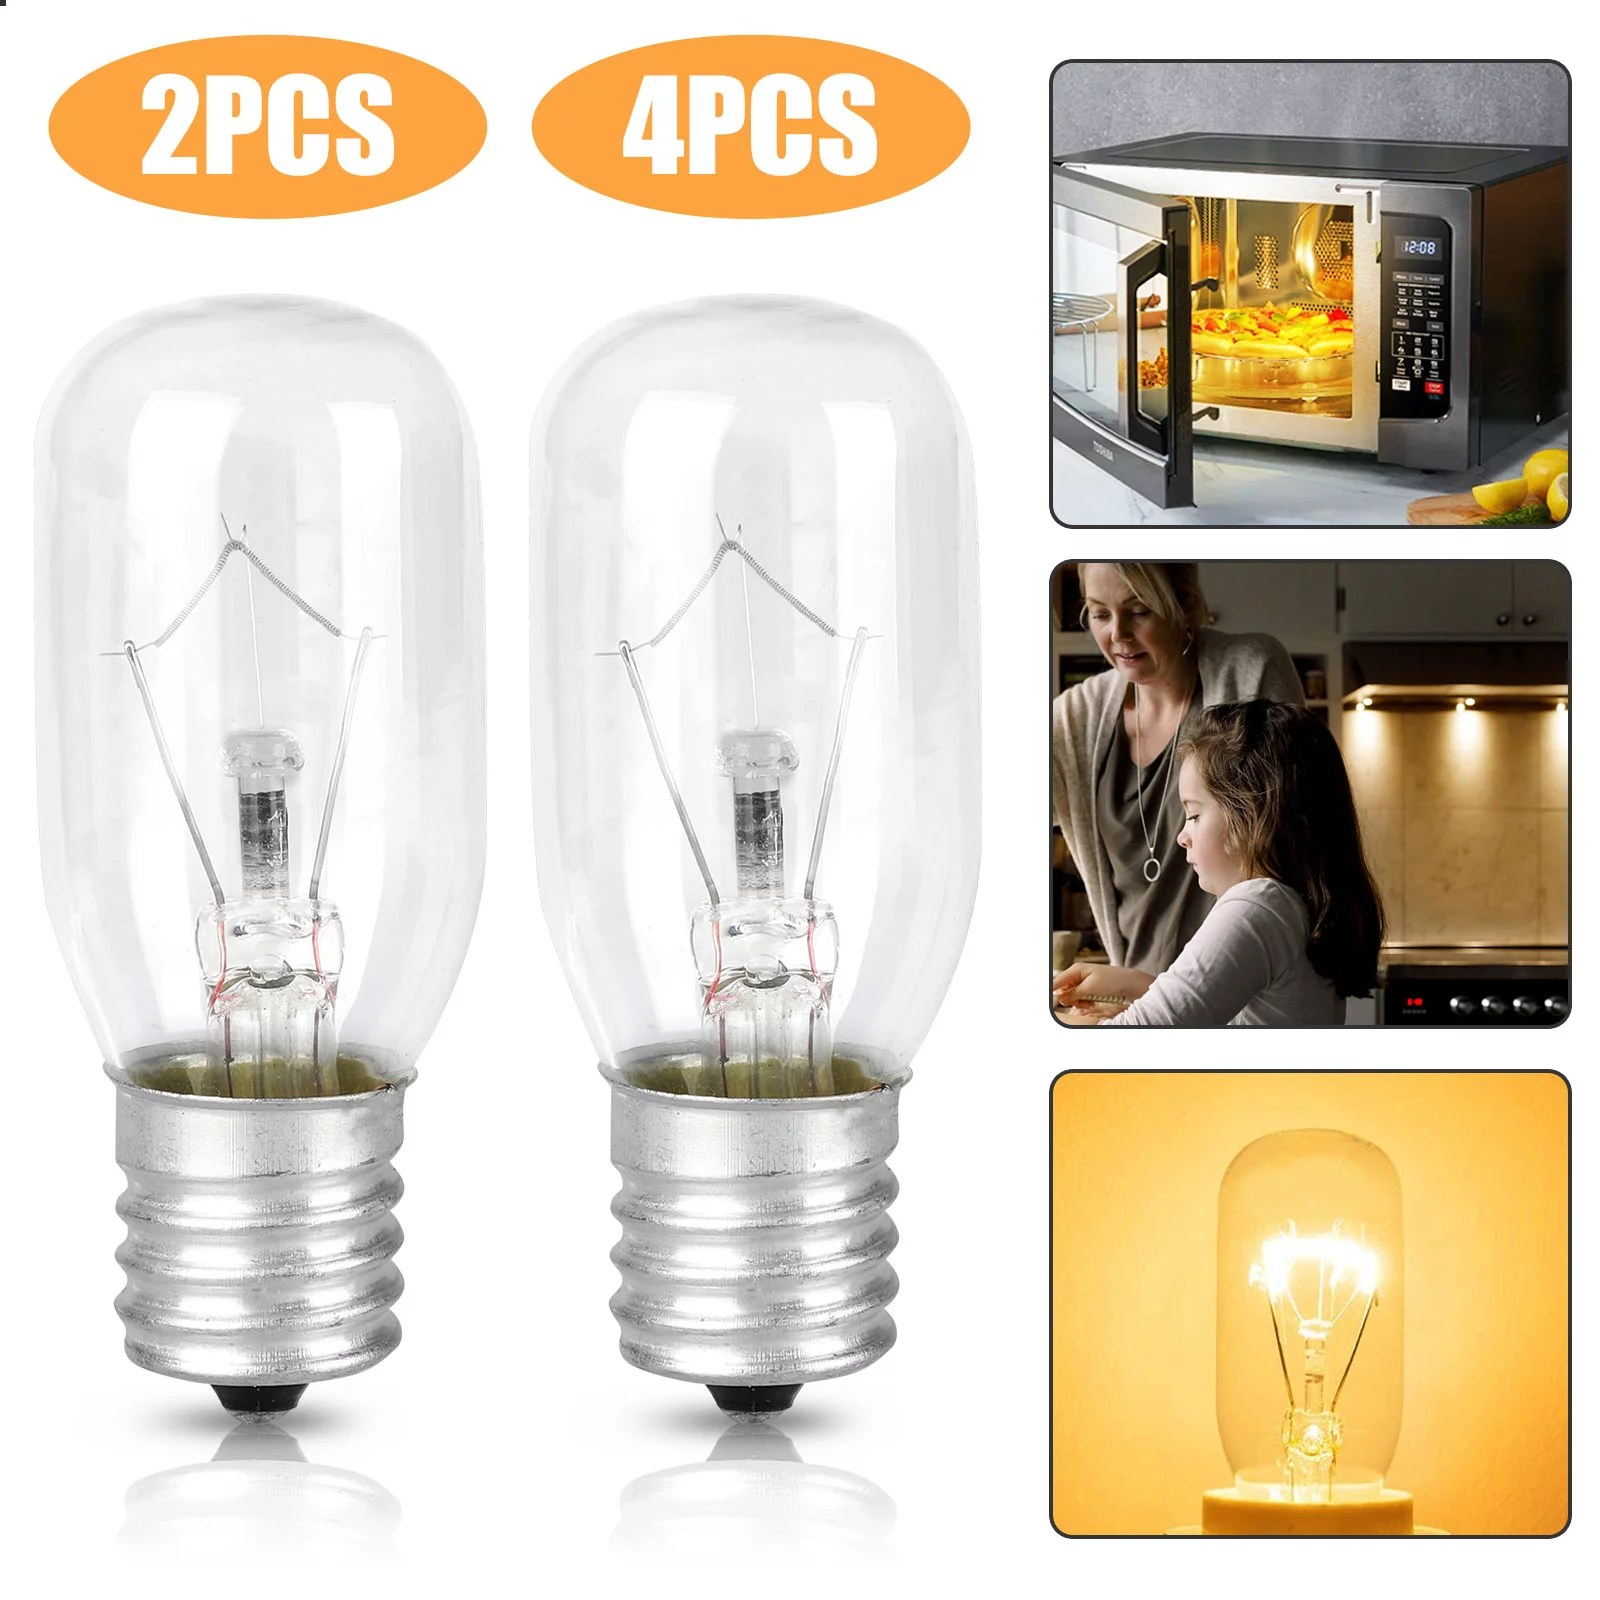 eeekit 2 4 pcs microwave light bulb dimmable with ac 110 125v 40w incandescent lamp bulbs for most general electric microwave oven universal type